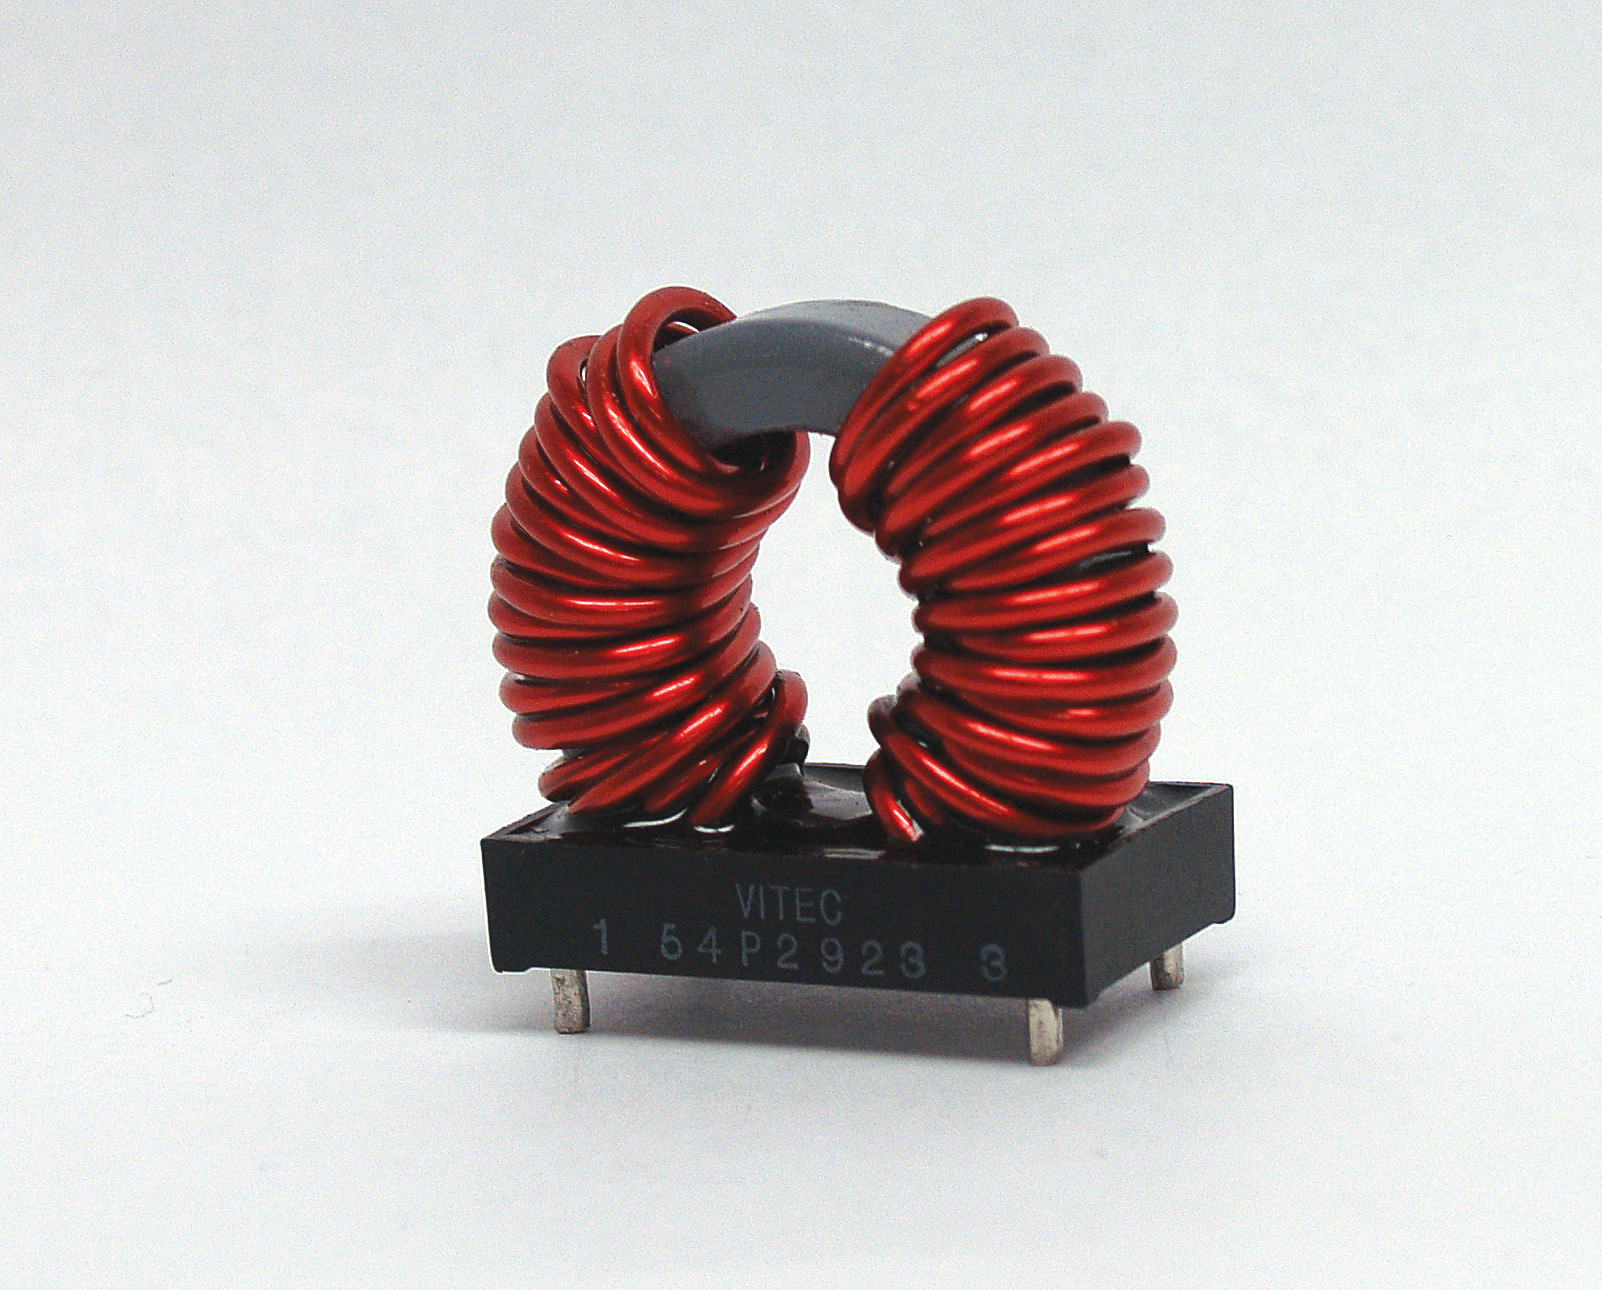 54P2923 Emi common-mode inductor, 25a,  005 ohm 3kv